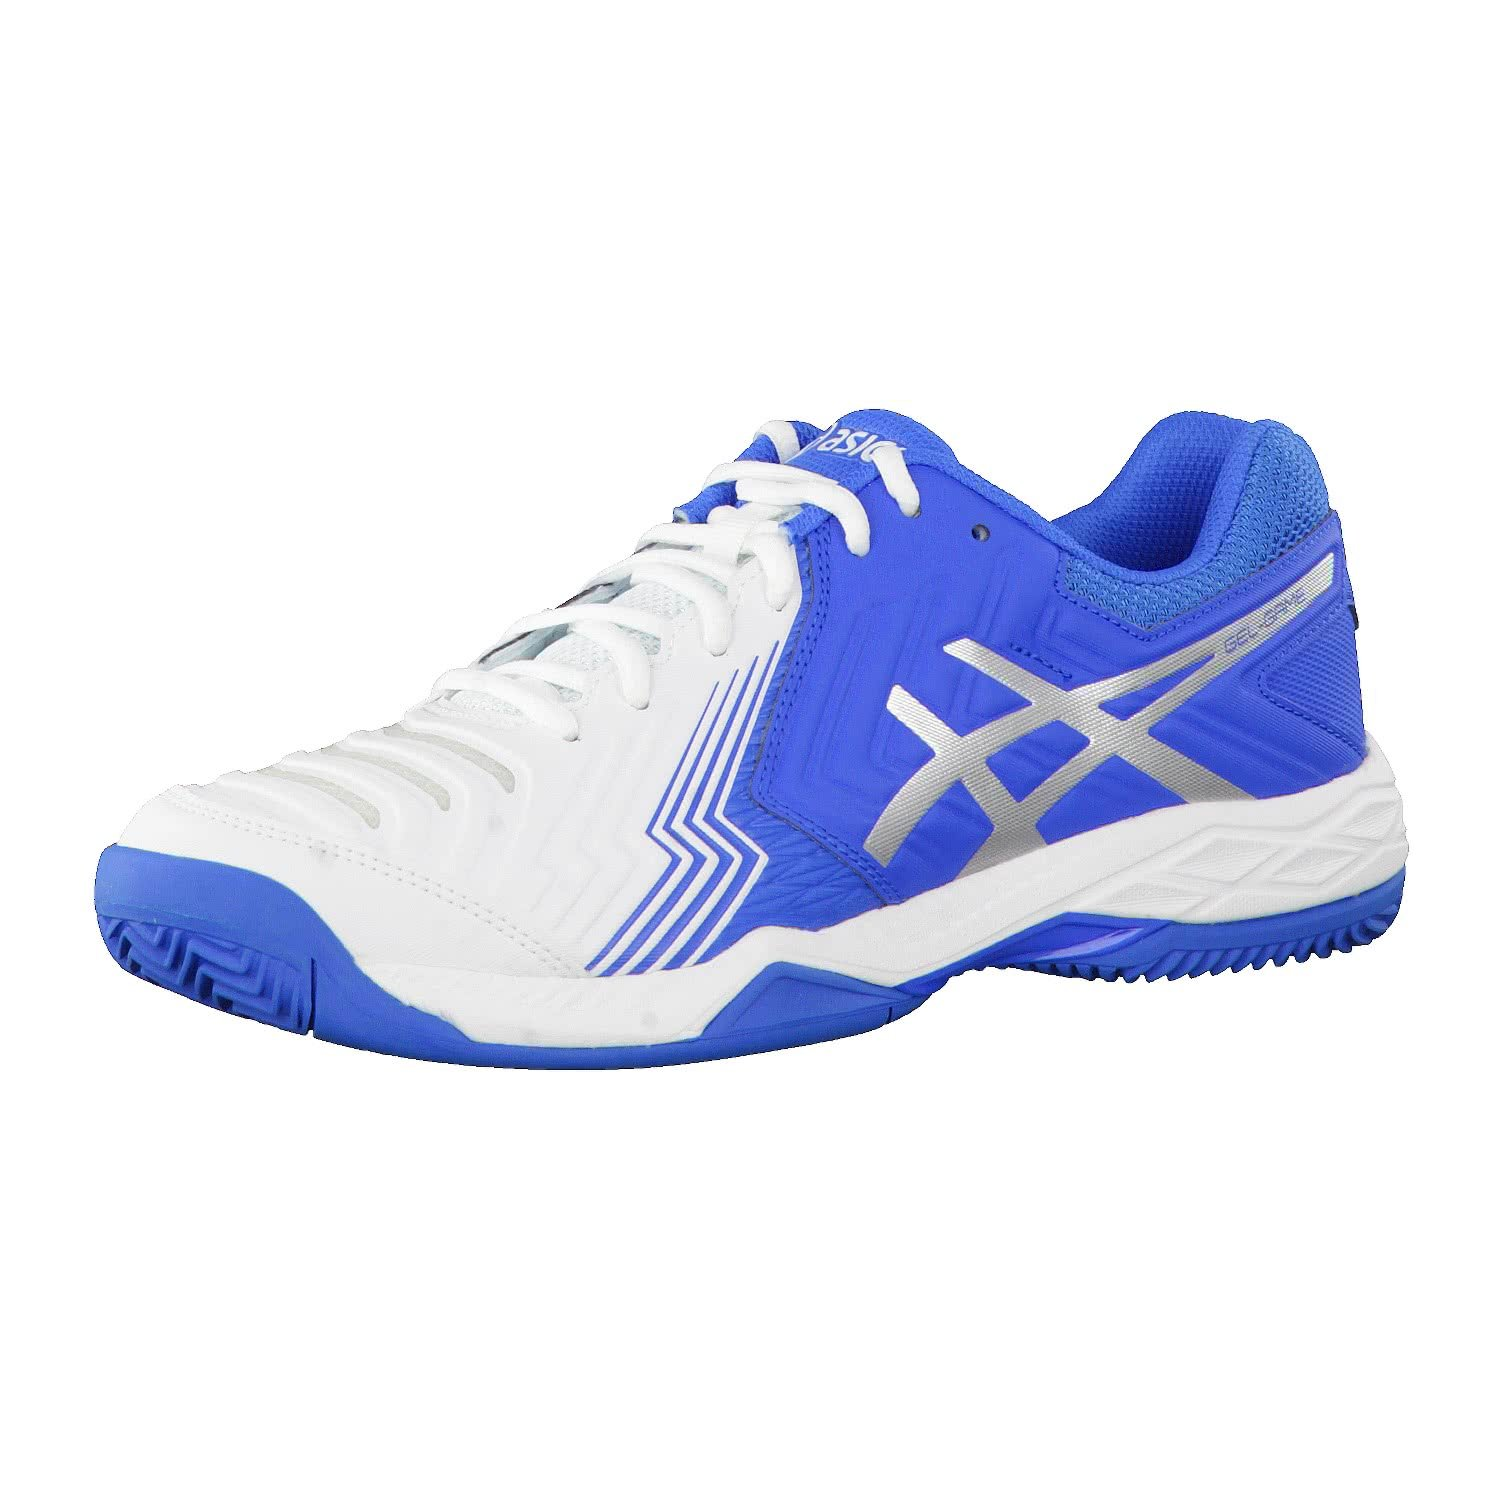 ASICS Herren Gel-Game 6 Clay Tennisschuhe, blau